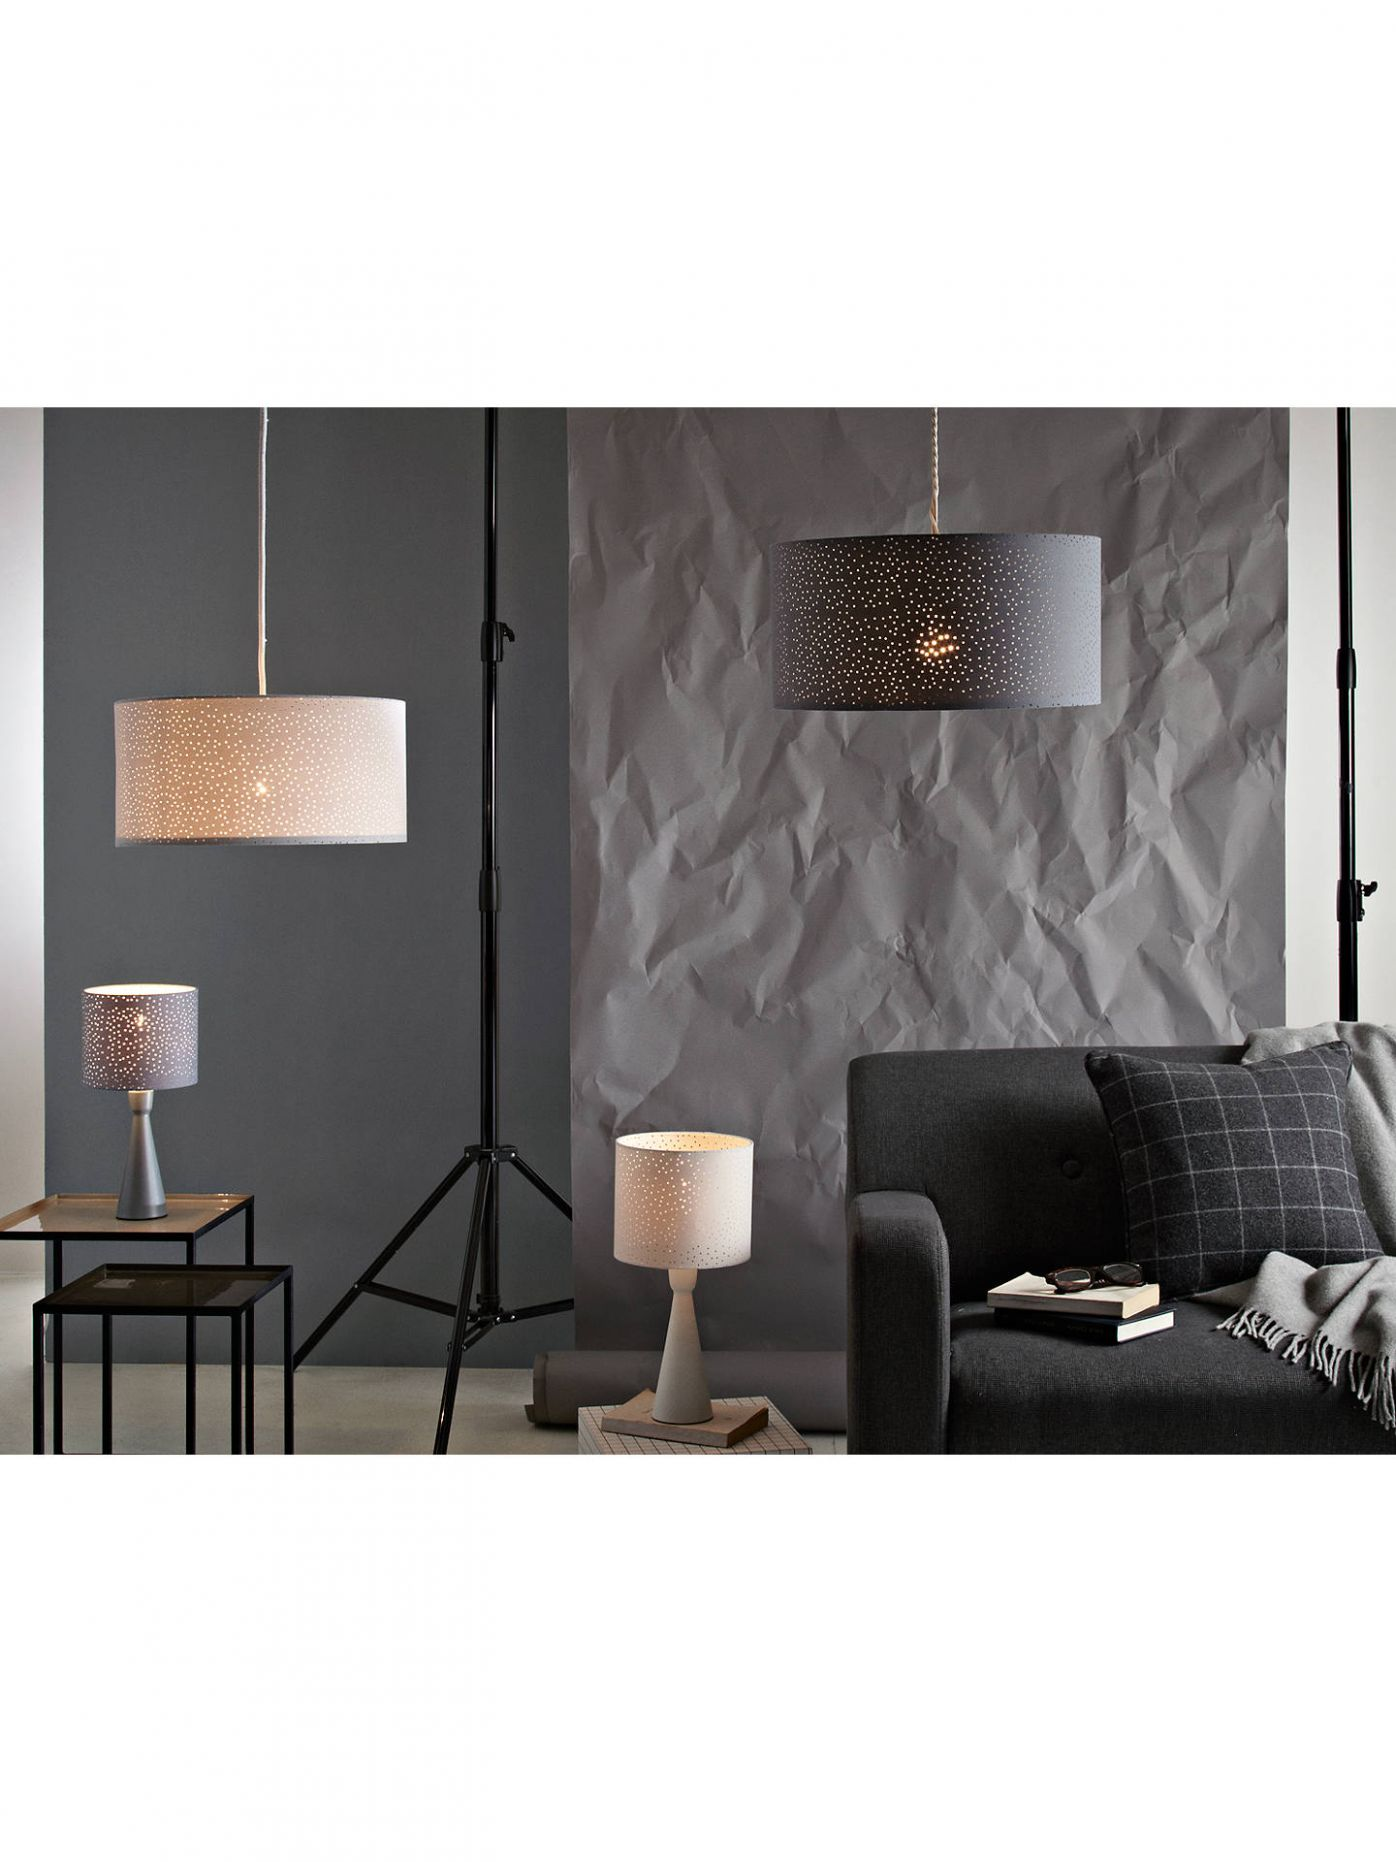 John Lewis & Partners Alice Starry Sky Easy-to-Fit Ceiling Shade, White - bedroom lighting ideas john lewis